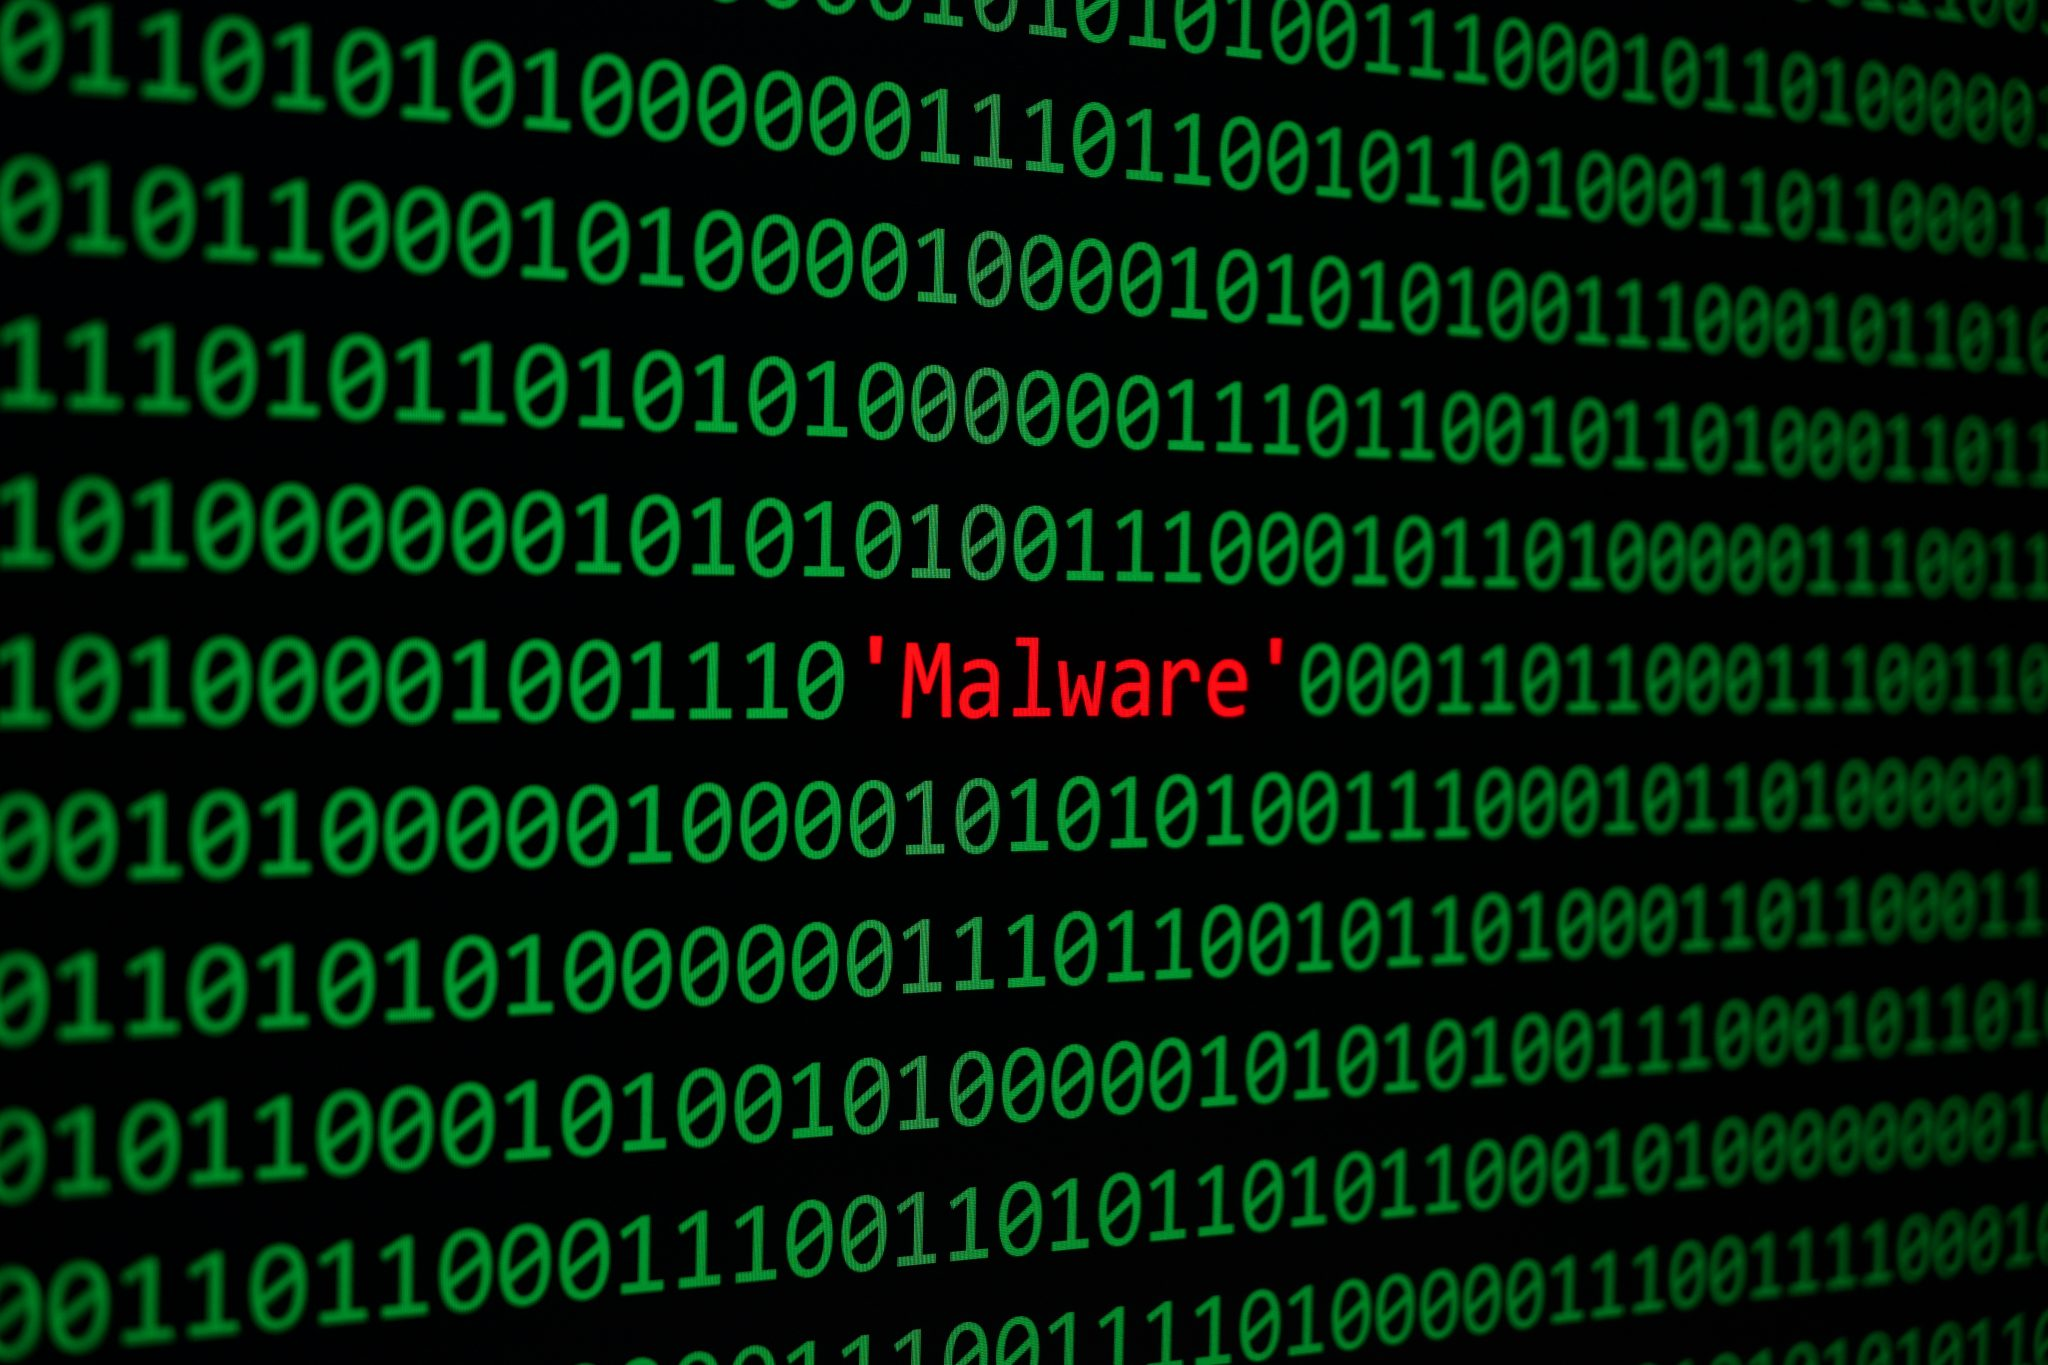 IoT-Specific Malware Infections Jumped 700% Amid Pandemic